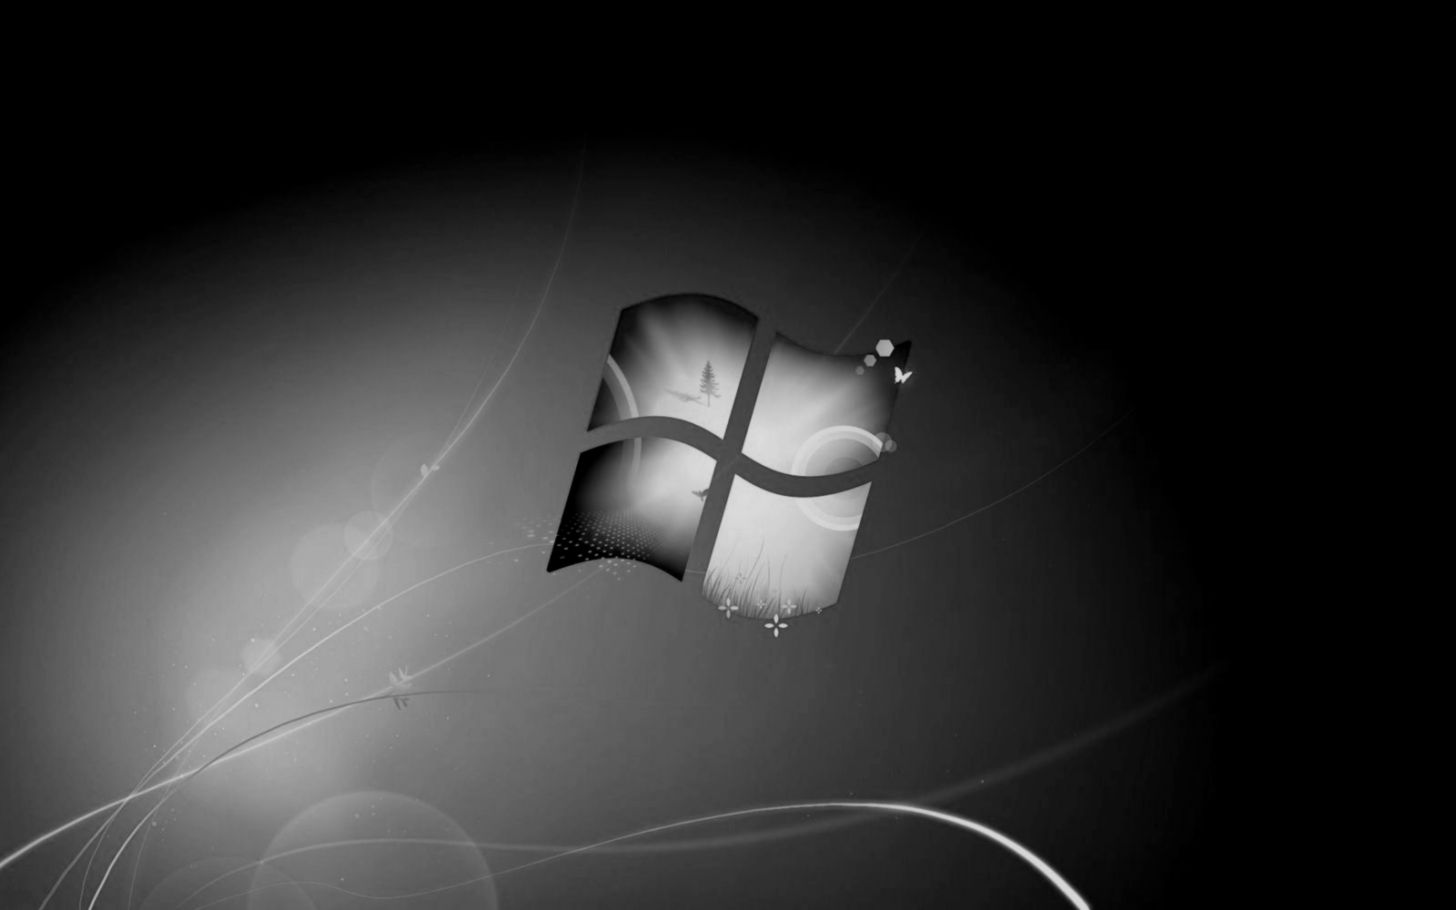 Black And White Wallpaper For Windows 7 | Zoom Wallpapers